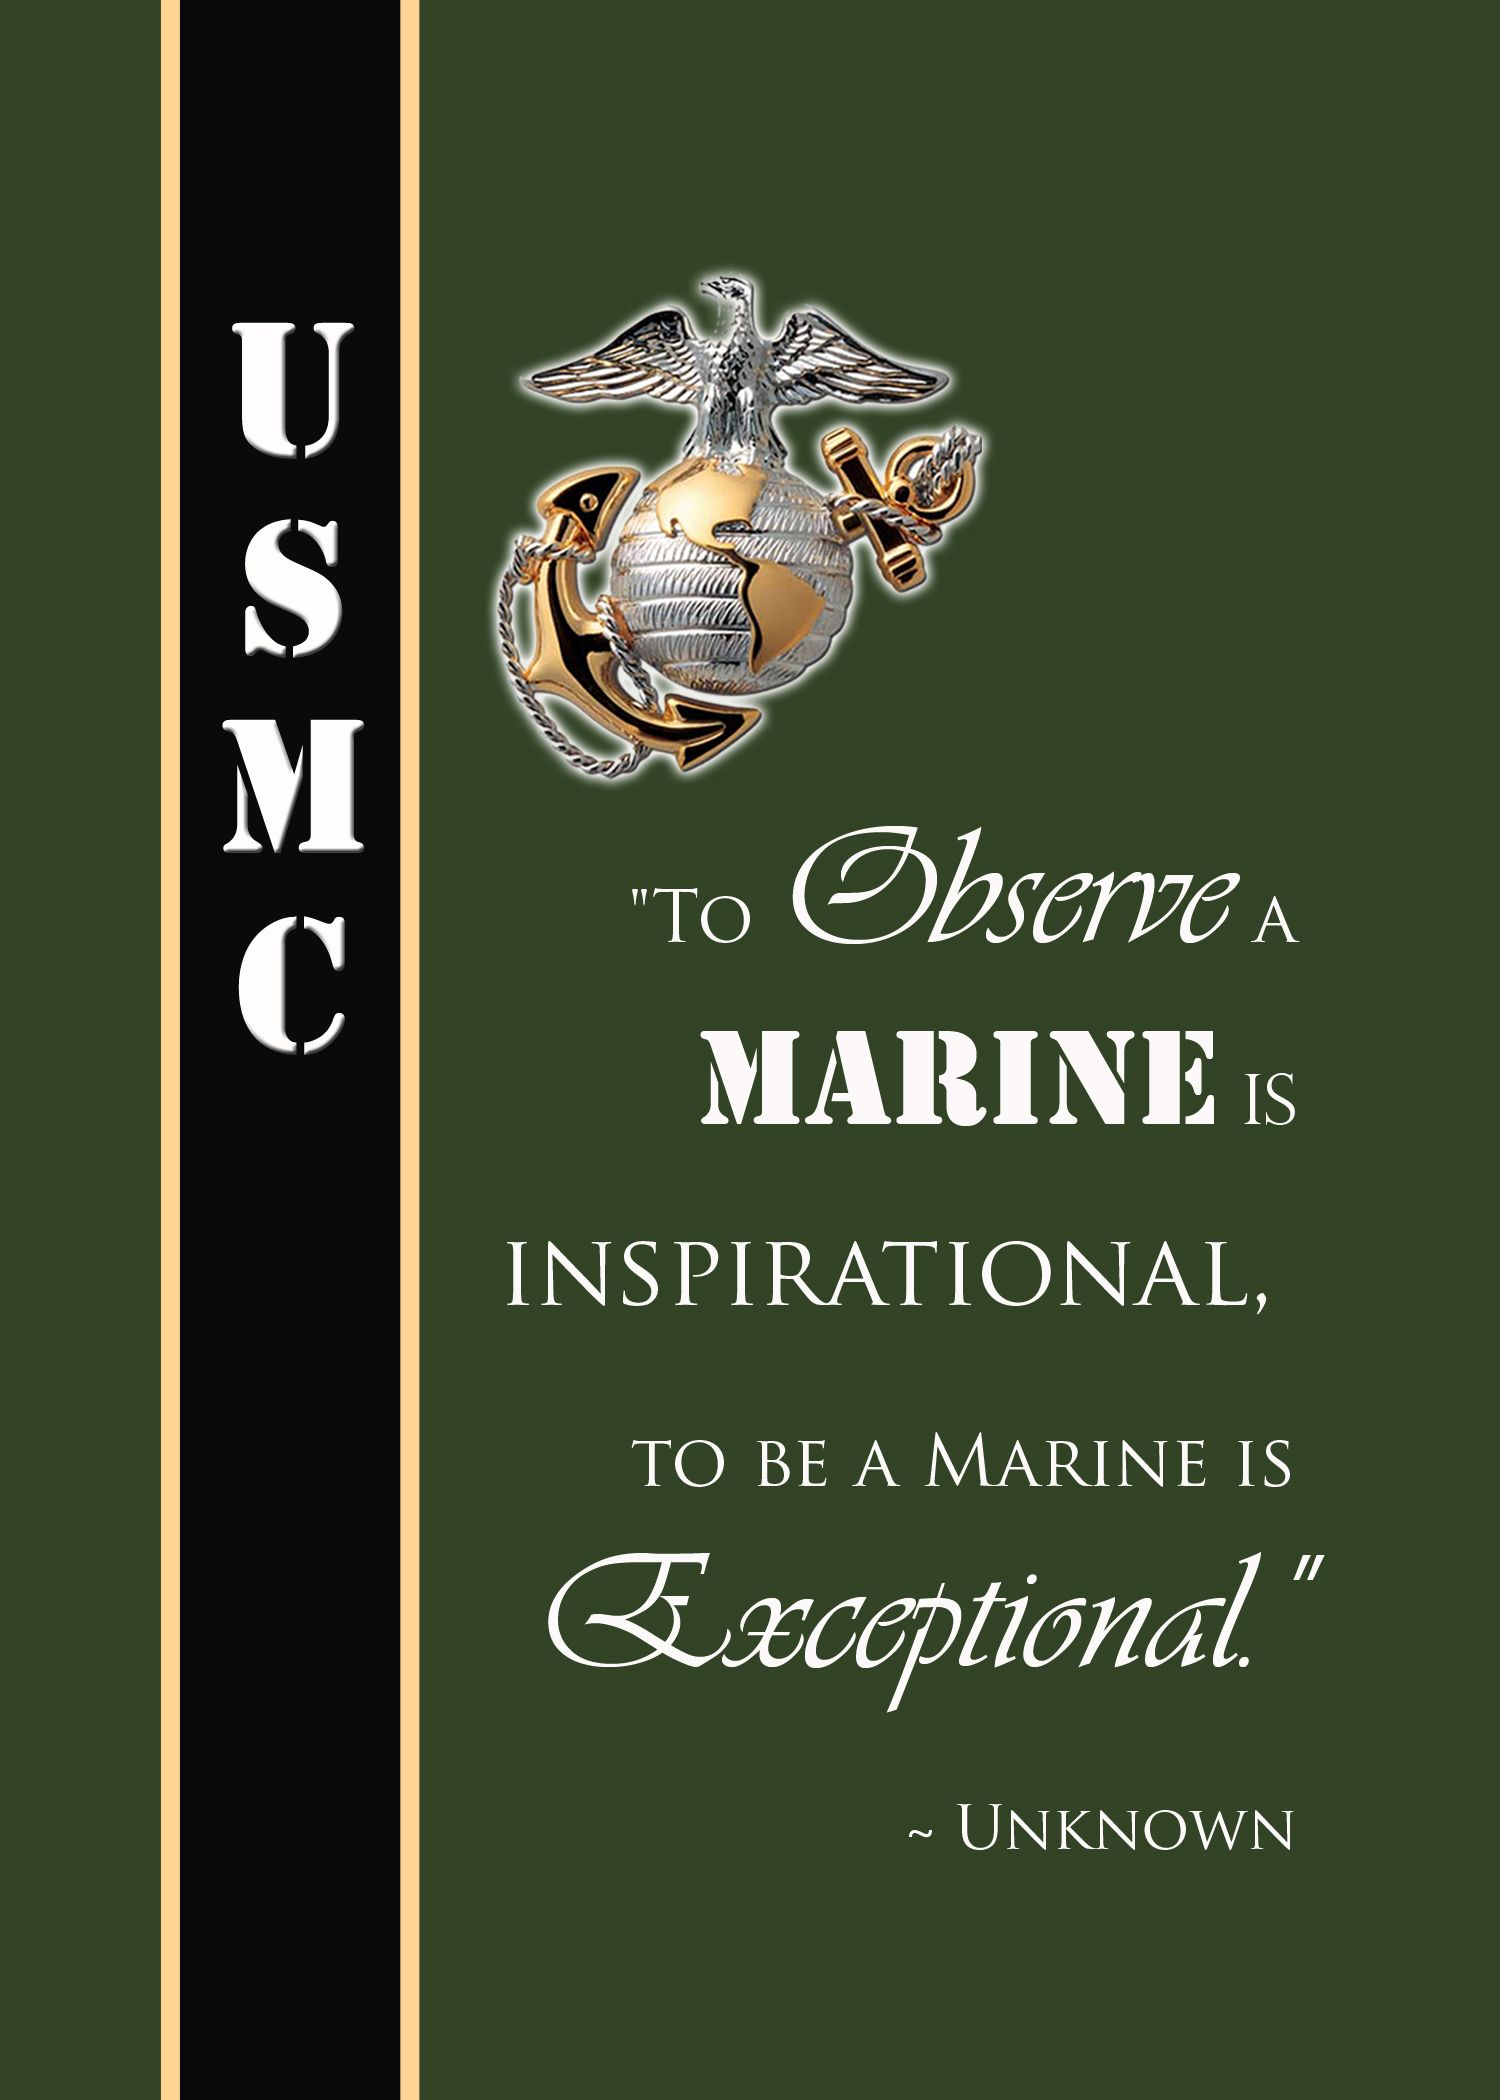 Marines Quotes Custom Famous Marine Quoteto Observe A Marine Is Inspirational To Be A . 2017